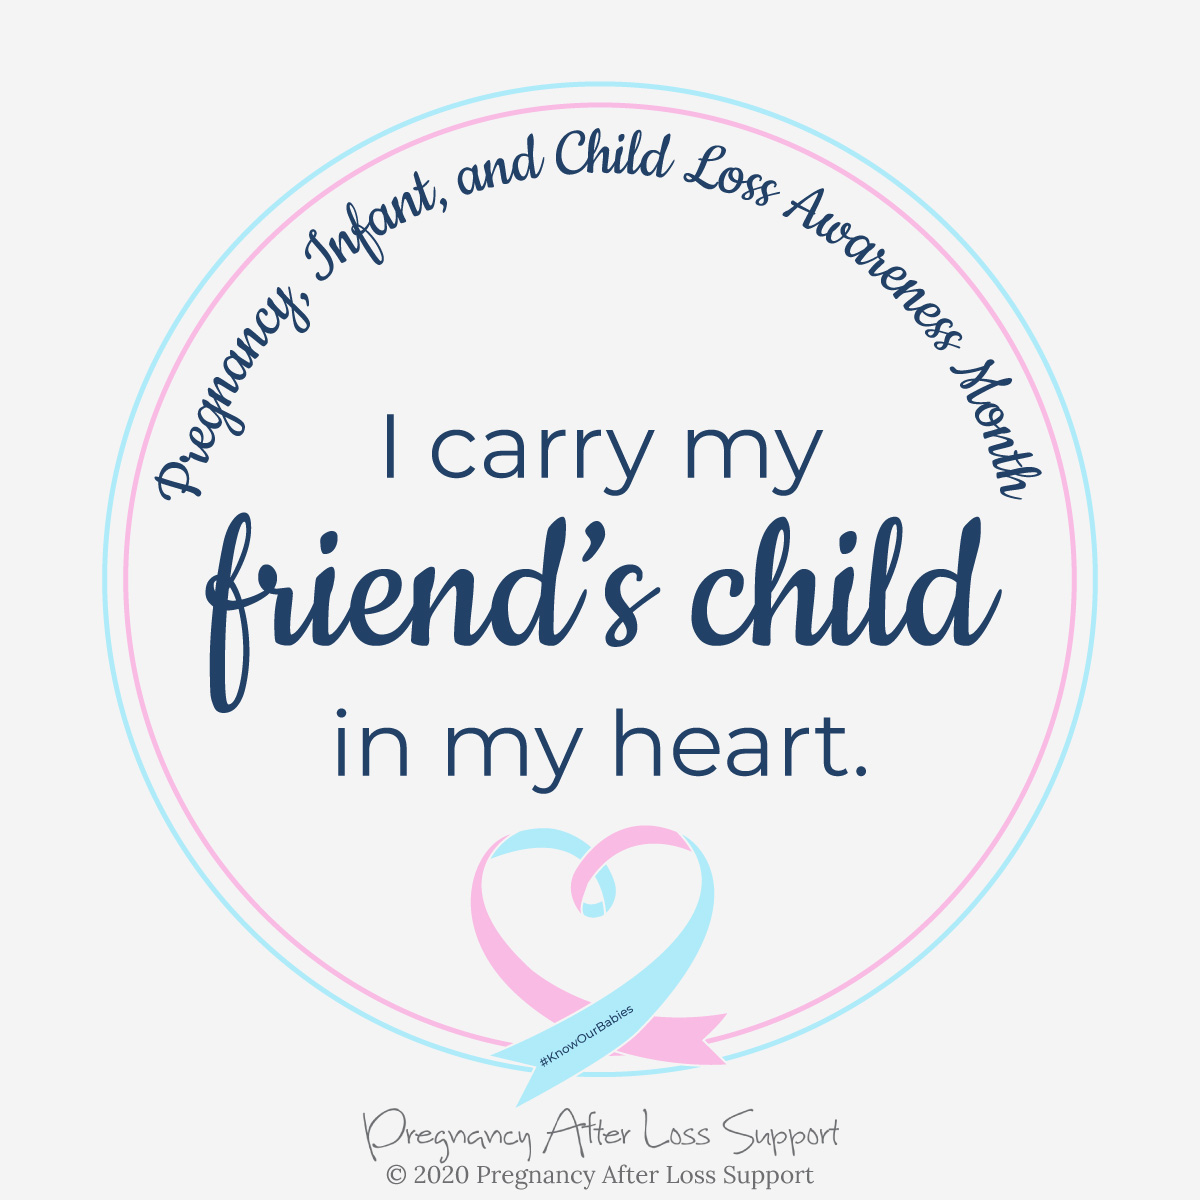 I carry my friend's child in my heart - Pregnancy, Infant, and Child Loss Awareness Month